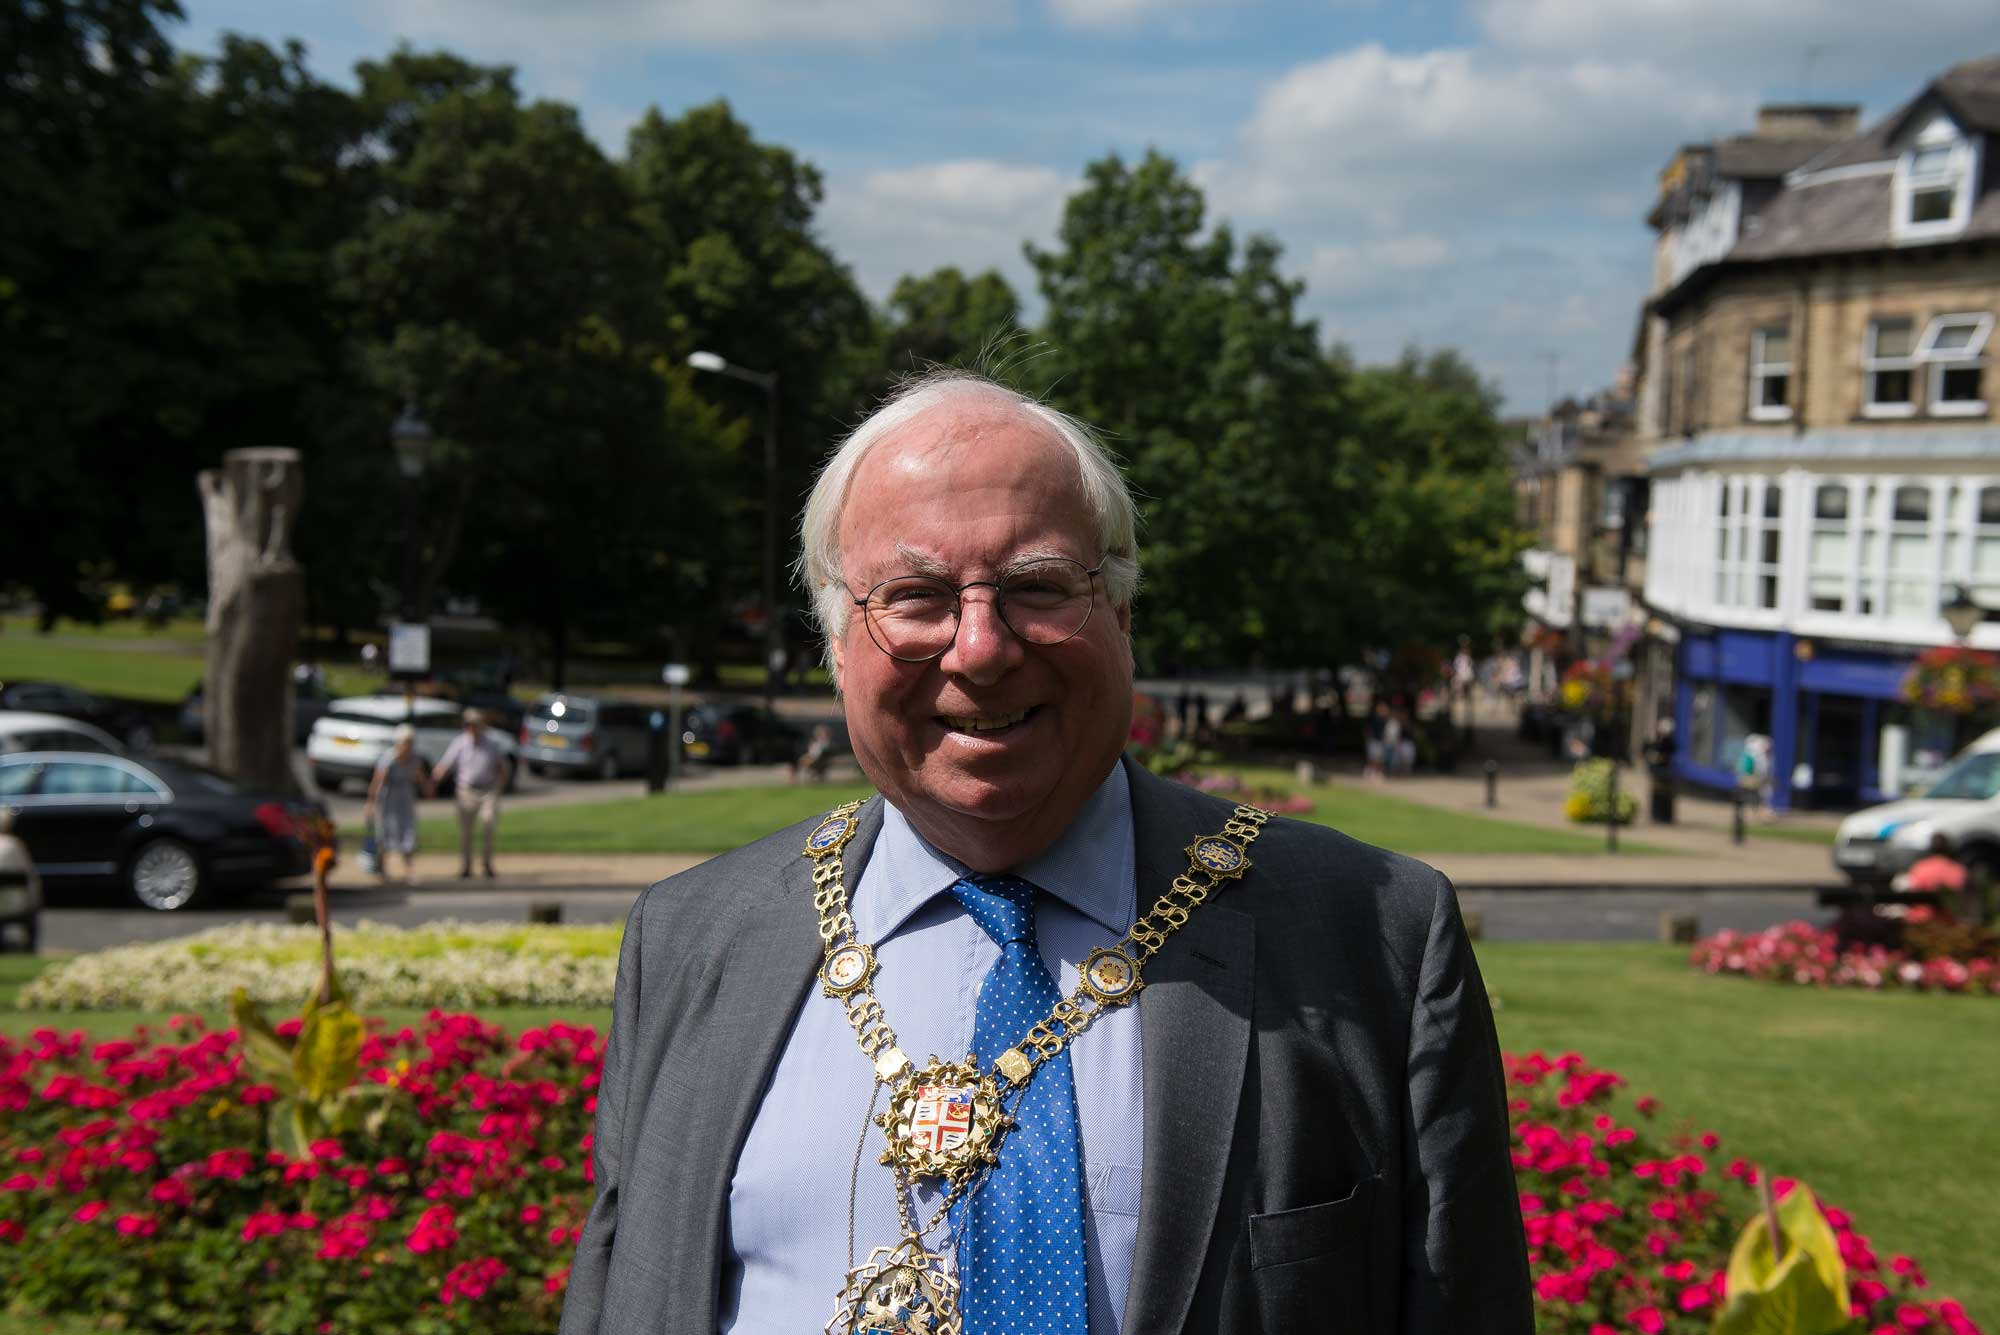 The Mayor of Harrogate, Councillor Nick Brown